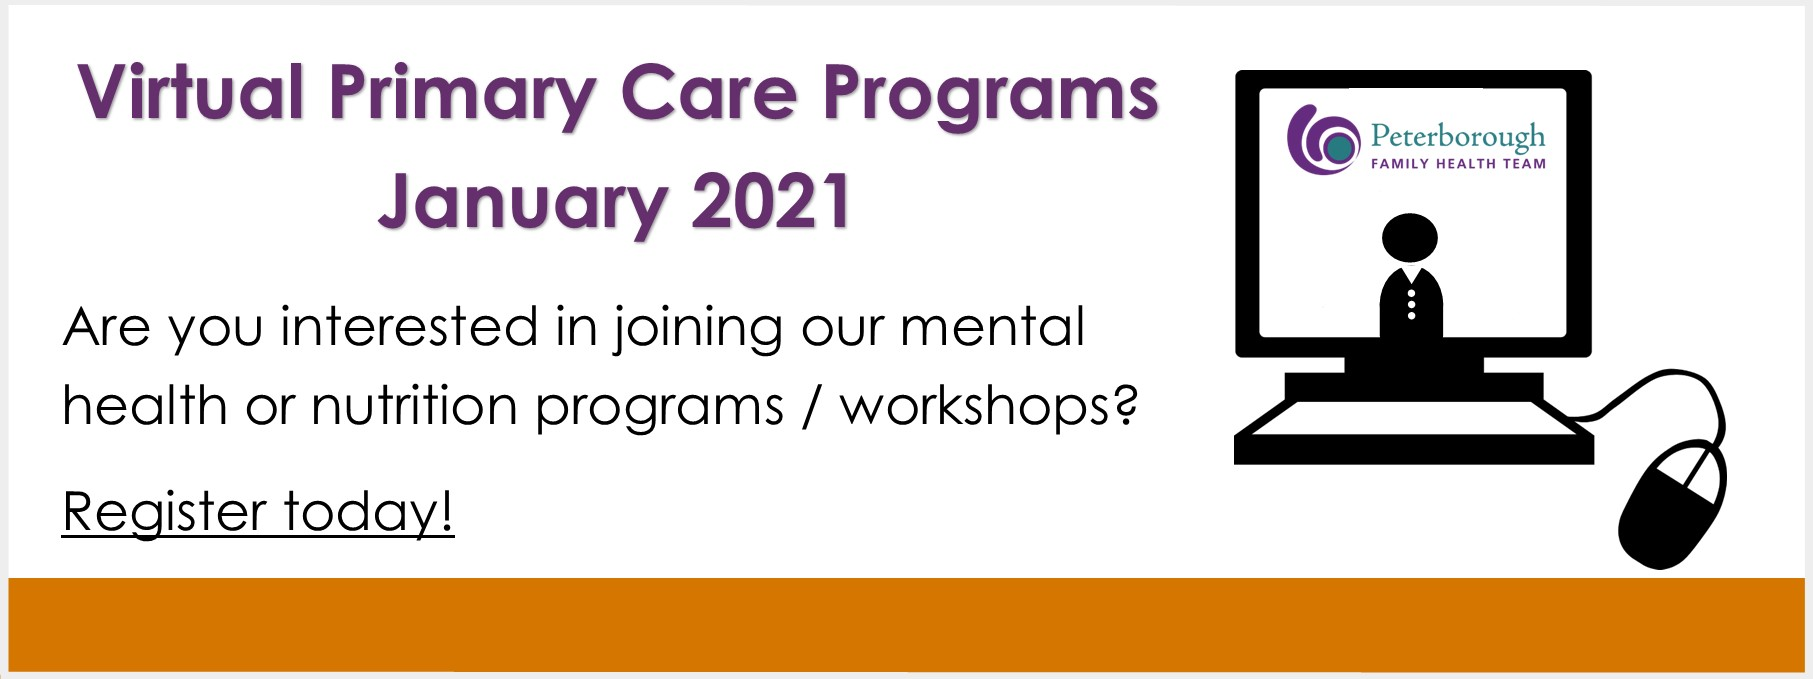 Virtual mental health and nutrition programs/workshops starting in January 2021. Register today.